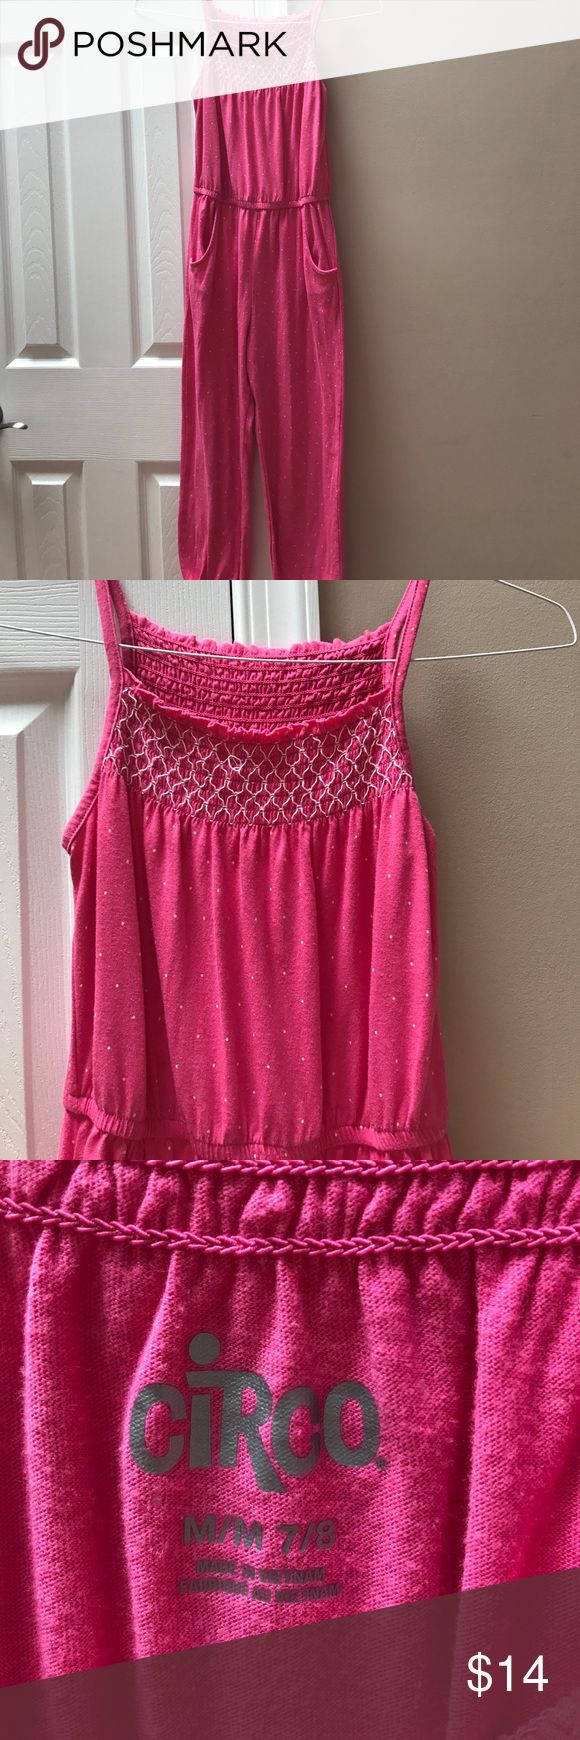 Girls jumpsuit 7/8 Girls Circo 7/8 jumpsuit. Pink with white dots. Circo Other